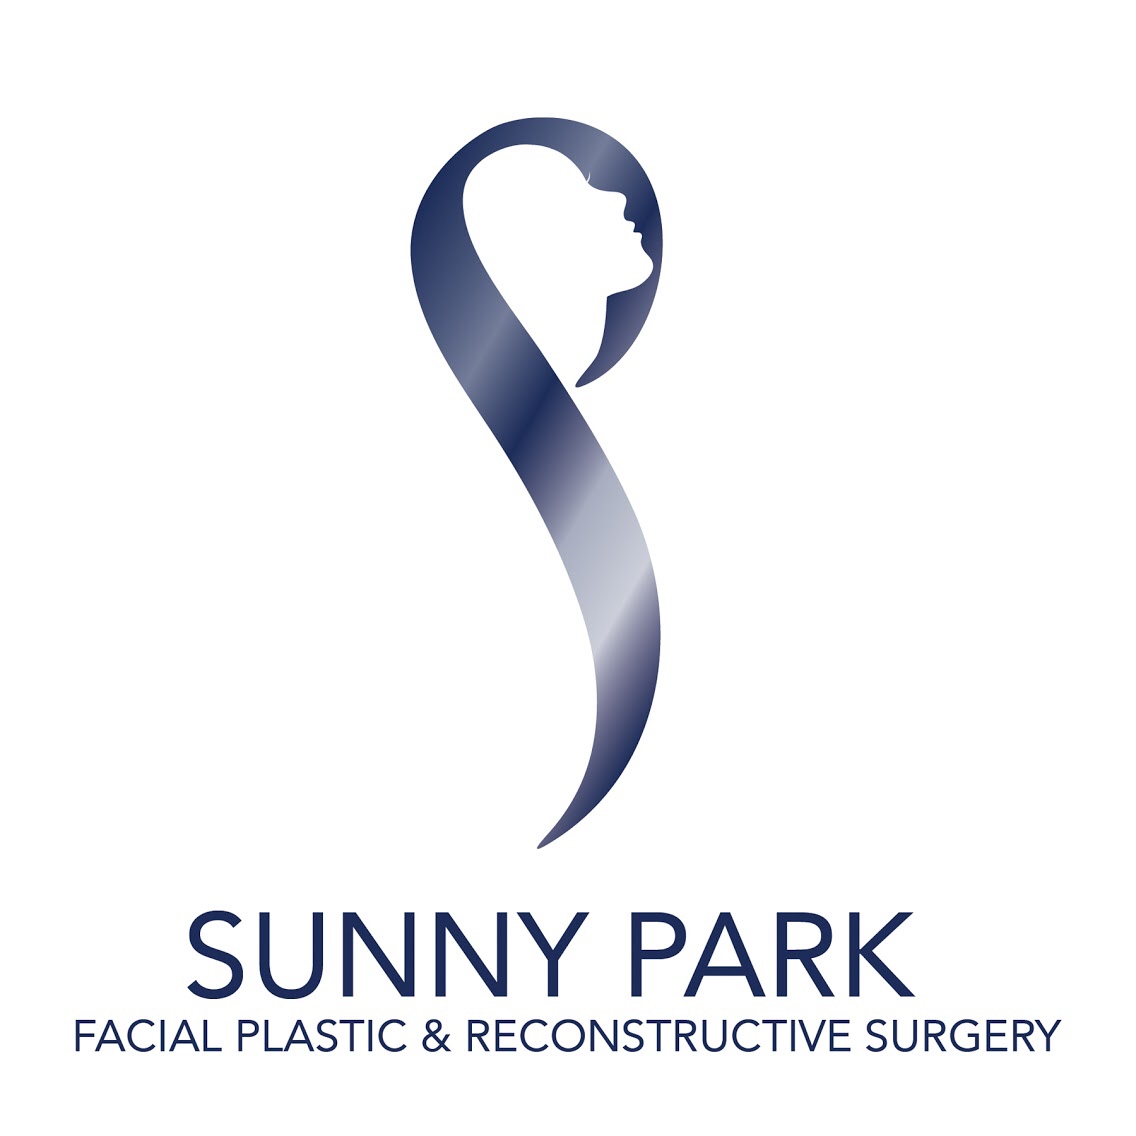 cosmetics surgery Logo photo - 1